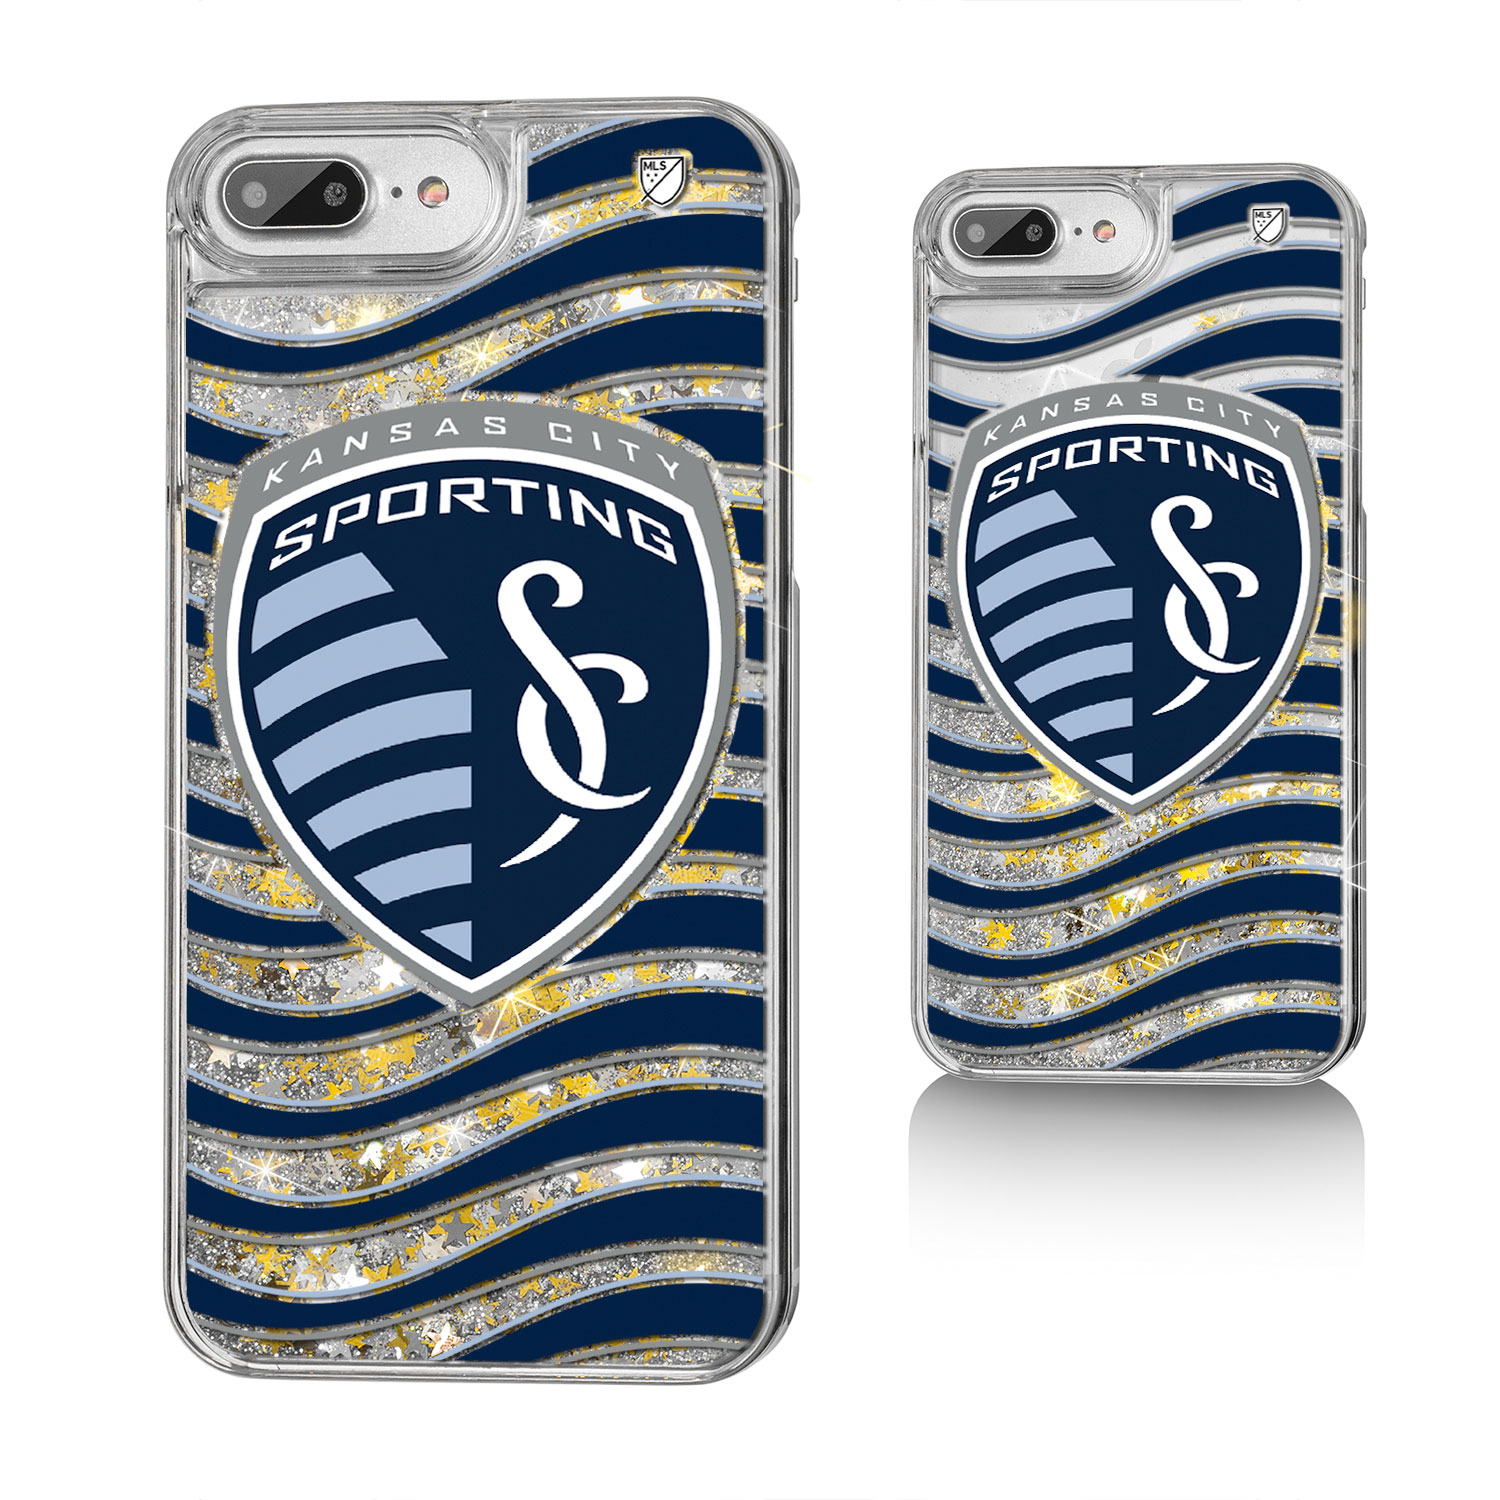 Sporting Kansas City SPORTING Wave Glitter Case for iPhone 8 Plus / 7 Plus / 6 Plus